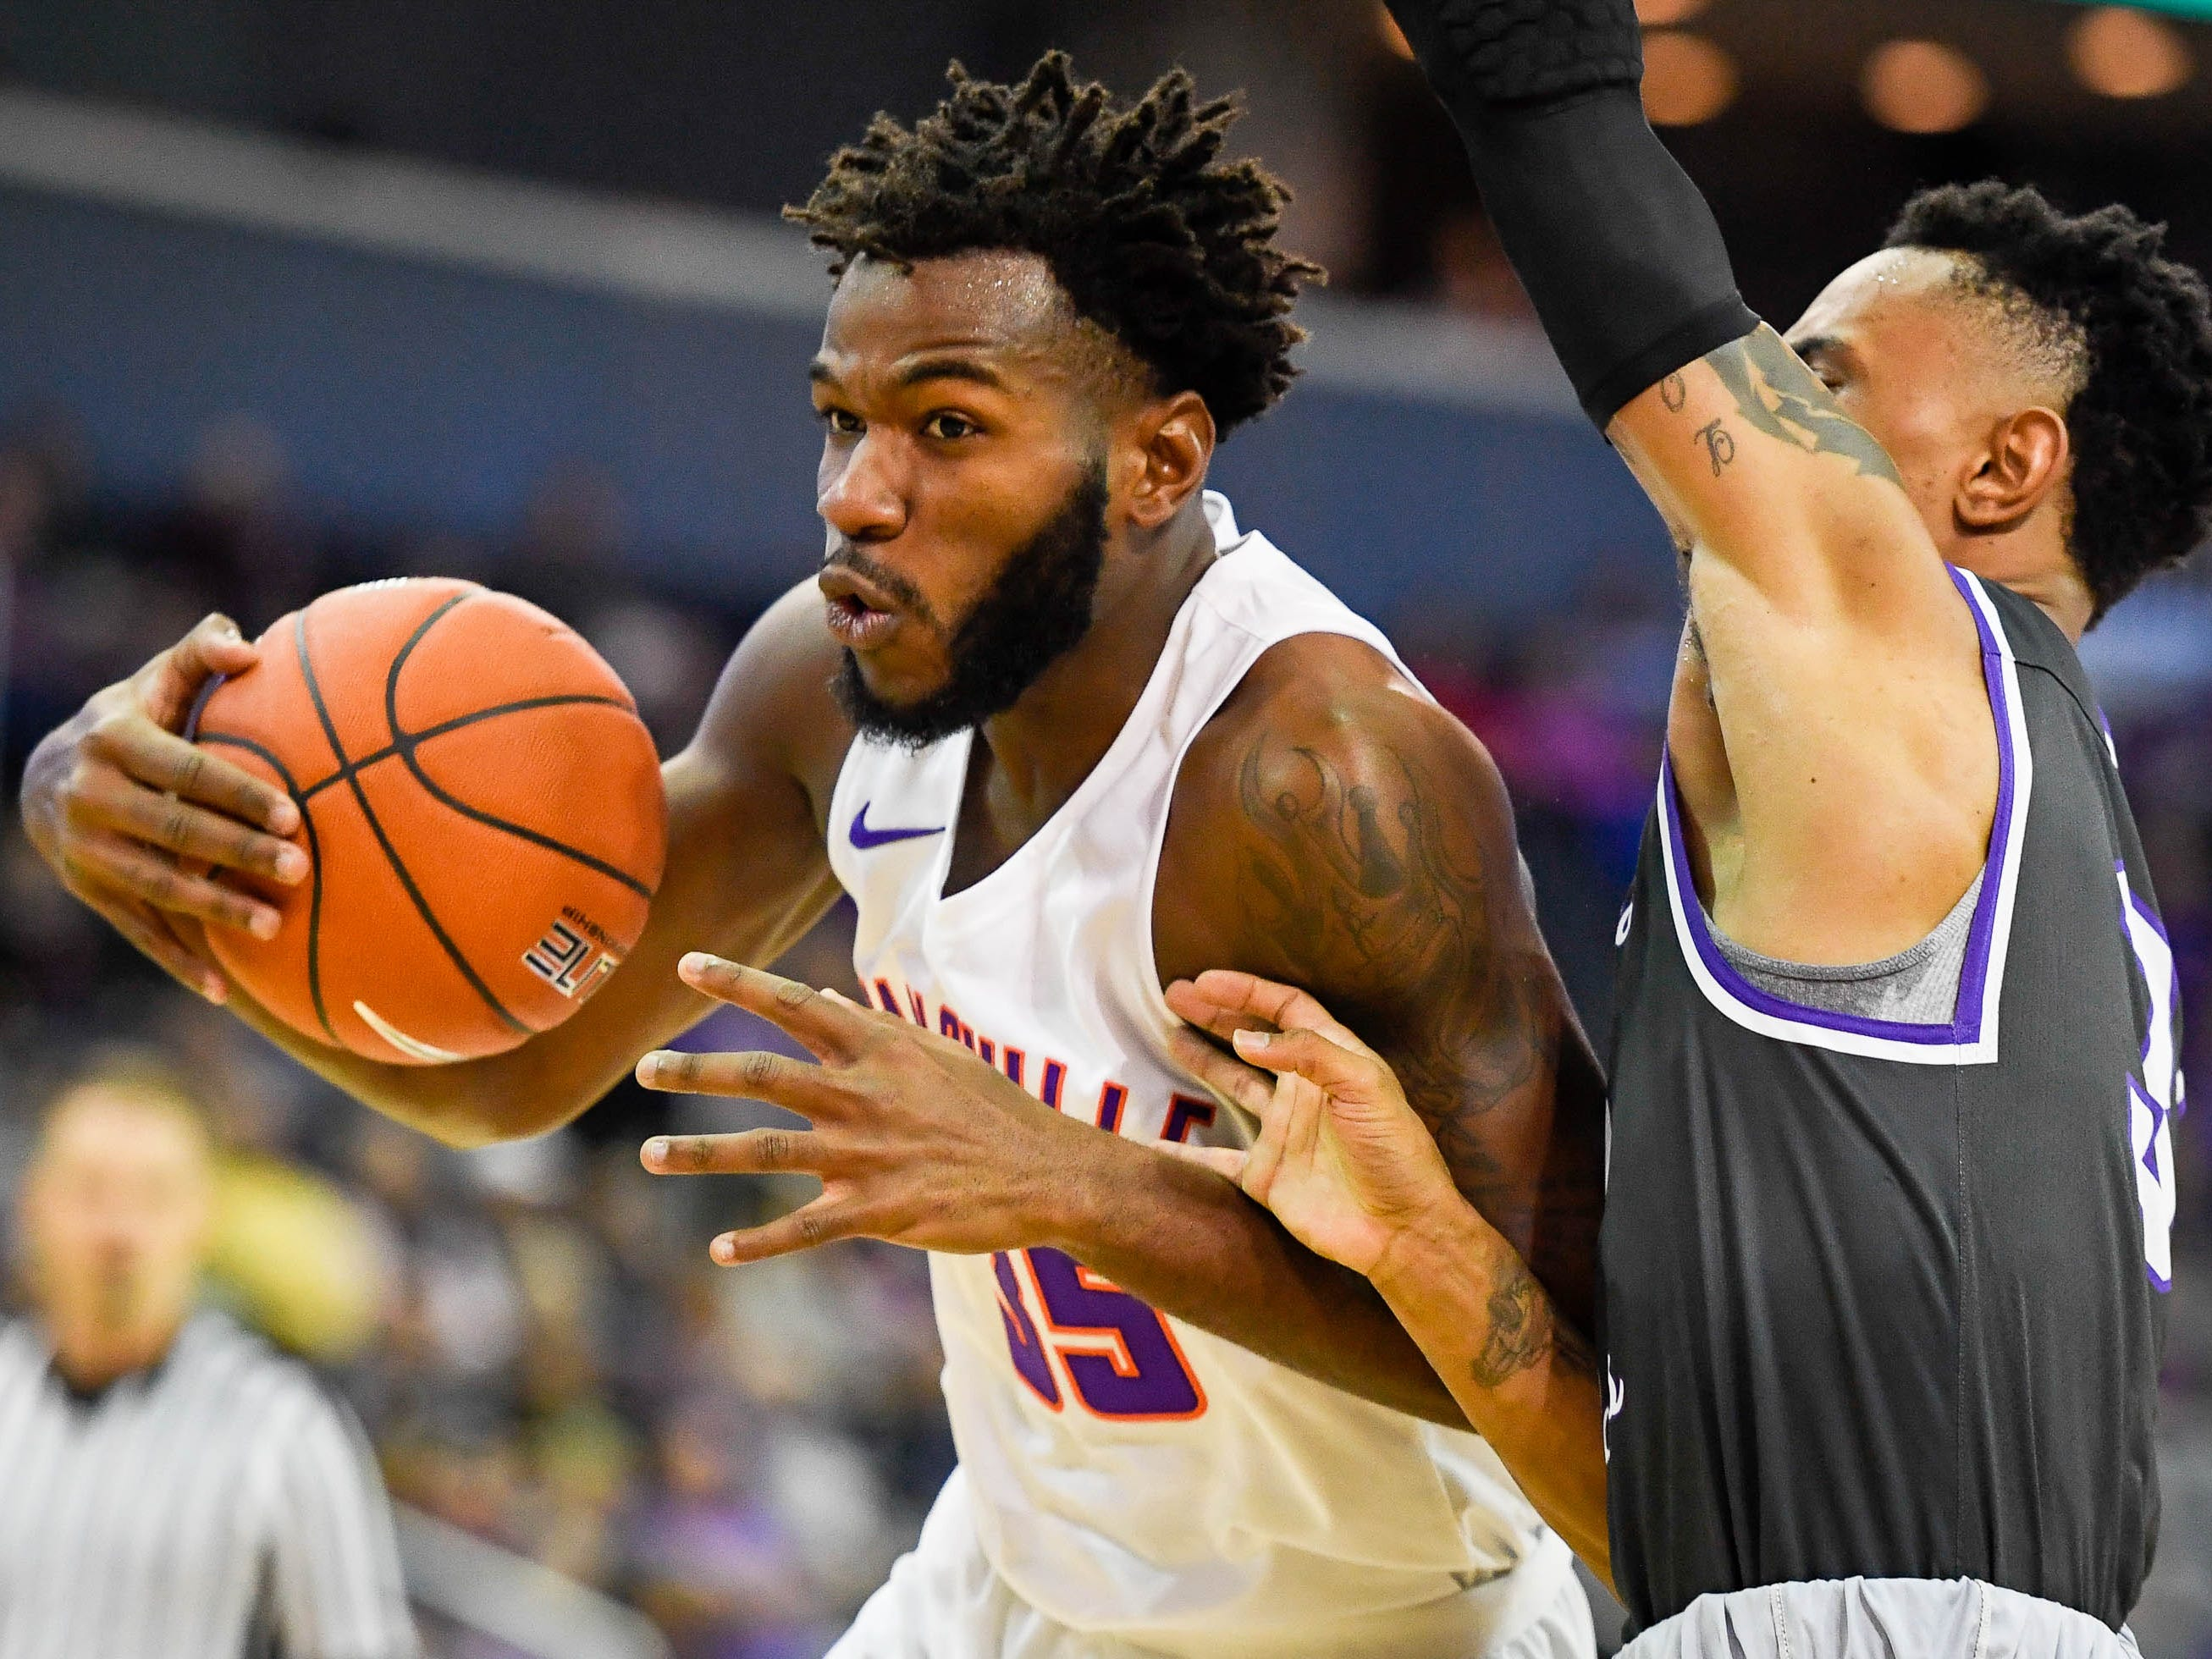 University of Evansville's John Hall (35) drives to the basket against defensive pressure from New Mexico Highlands' Gerad Davis(3) as the University of Evansville Purple Aces play the New Mexico Highlands Cowboys in a exhibition game at the Ford Center Saturday, November 3, 2018.